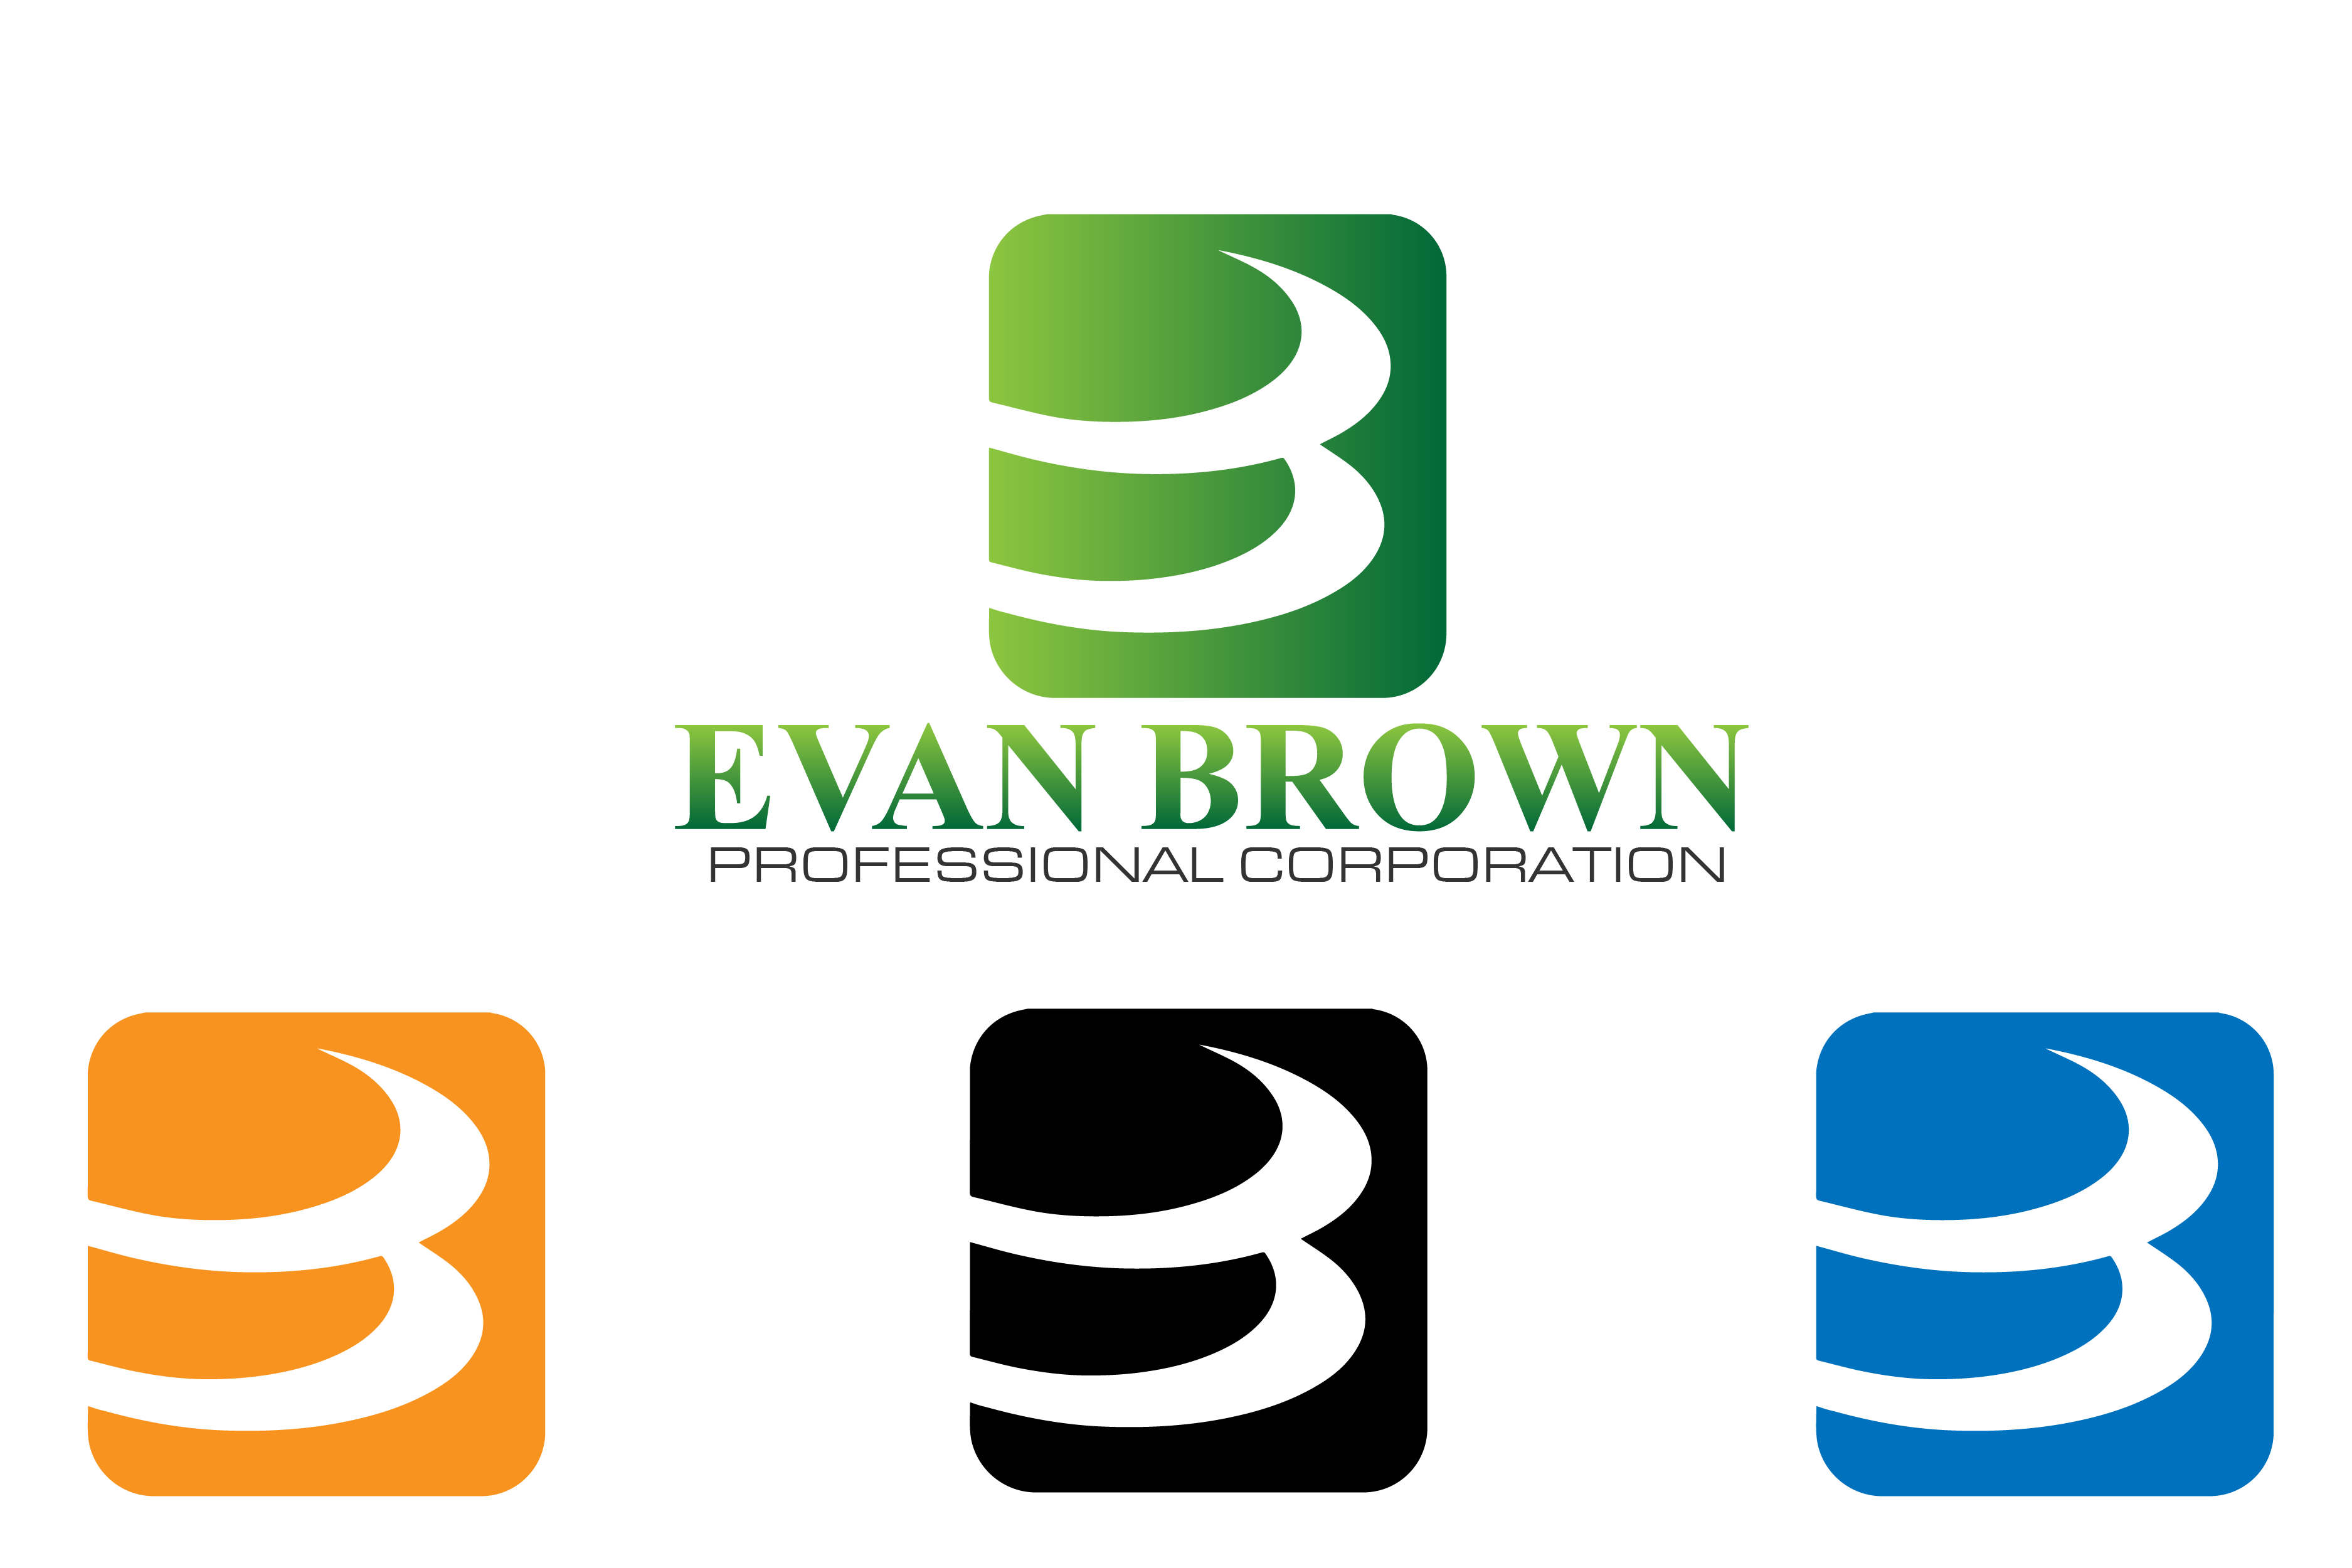 Logo Design by brands_in - Entry No. 64 in the Logo Design Contest Inspiring Logo Design for Evan Brown Professional Corporation.